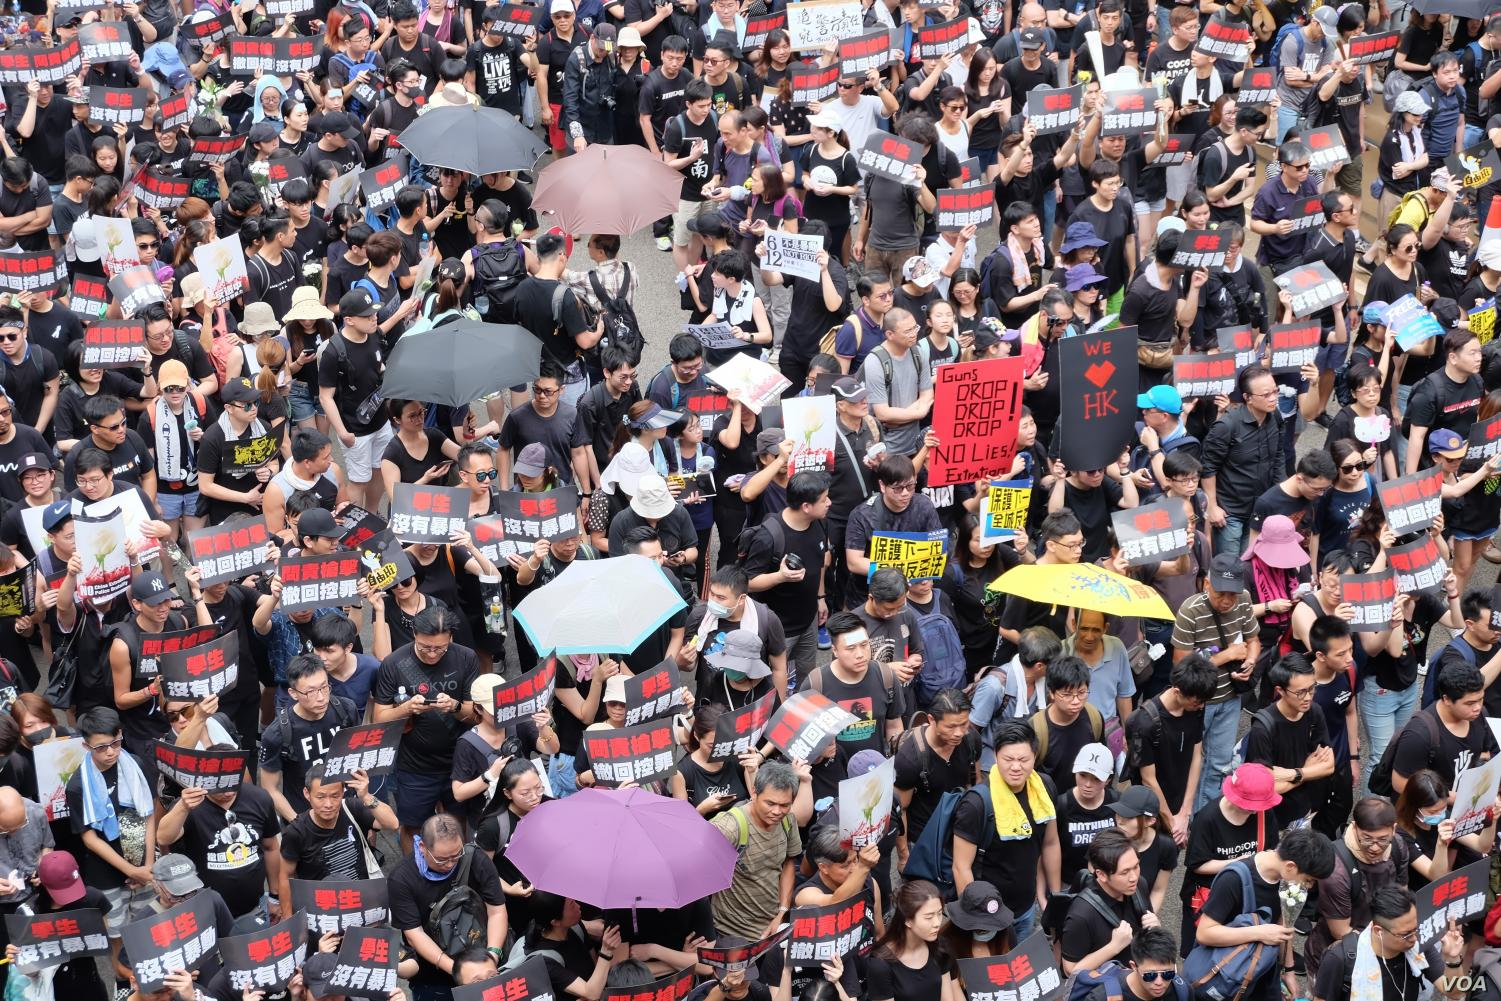 People in Hong Kong protest in fear of Chinese oppression.